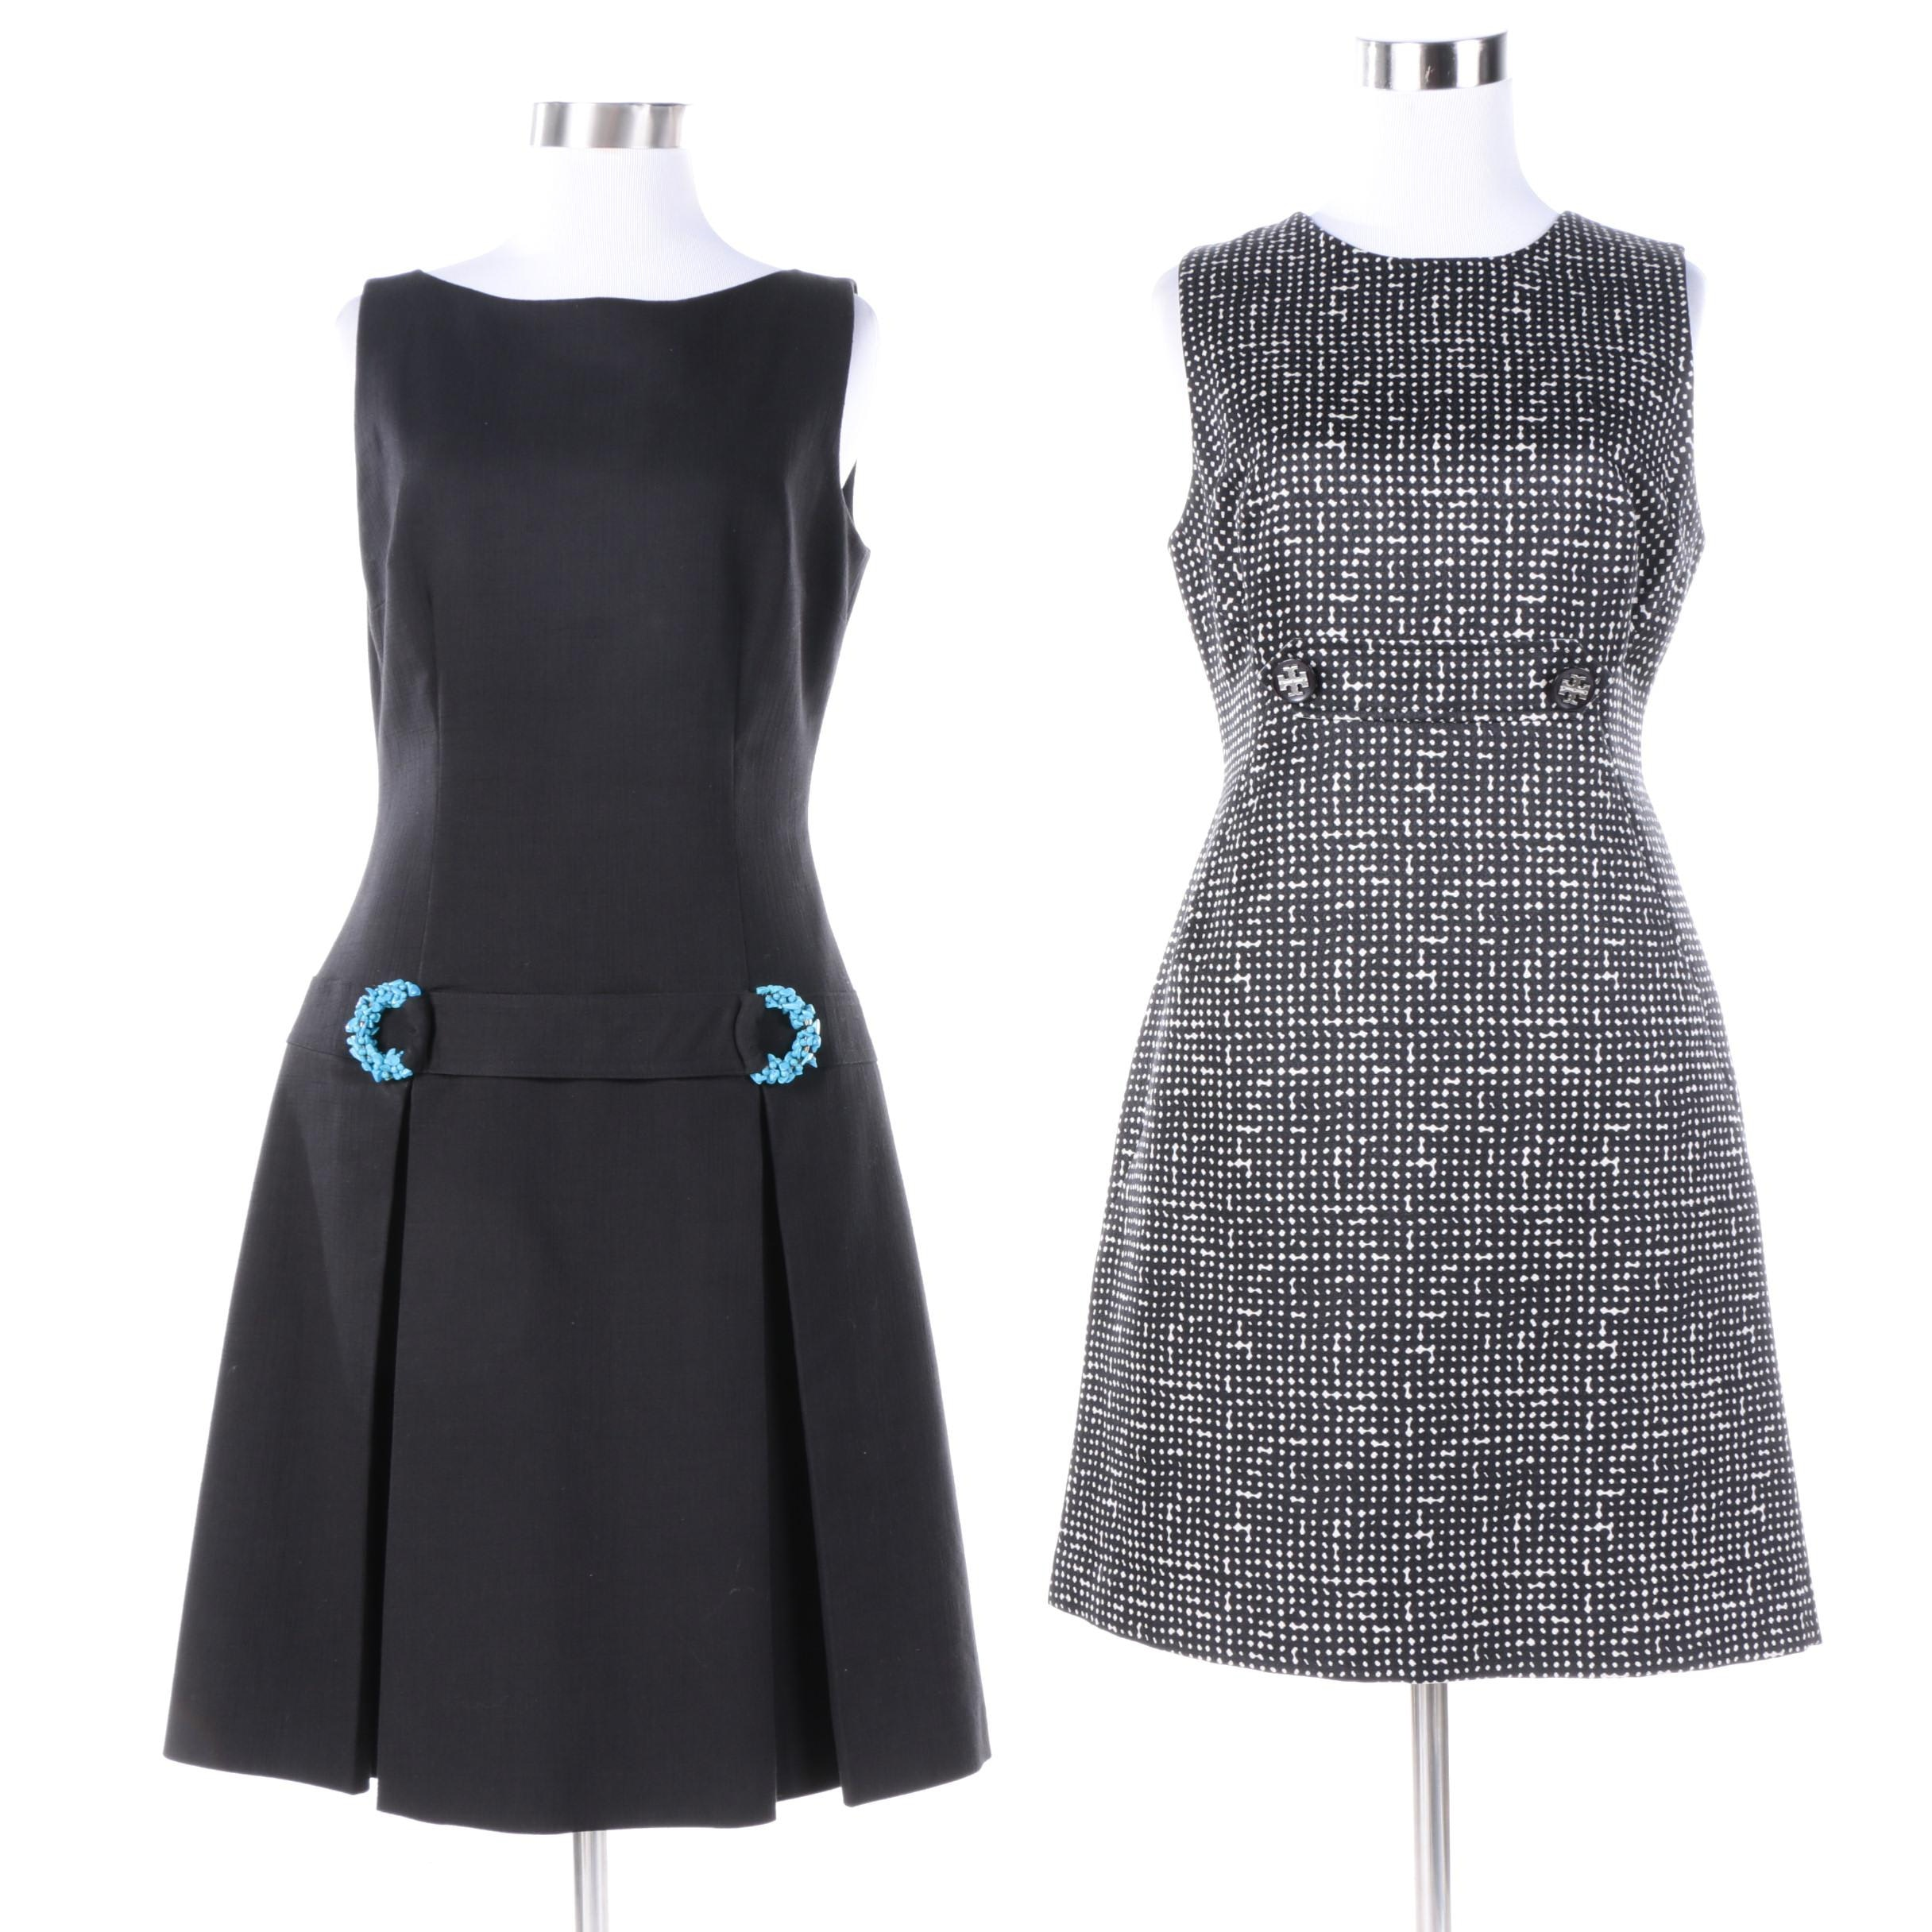 Women's Tory Burch and David Meister Sleeveless A-Line Dresses